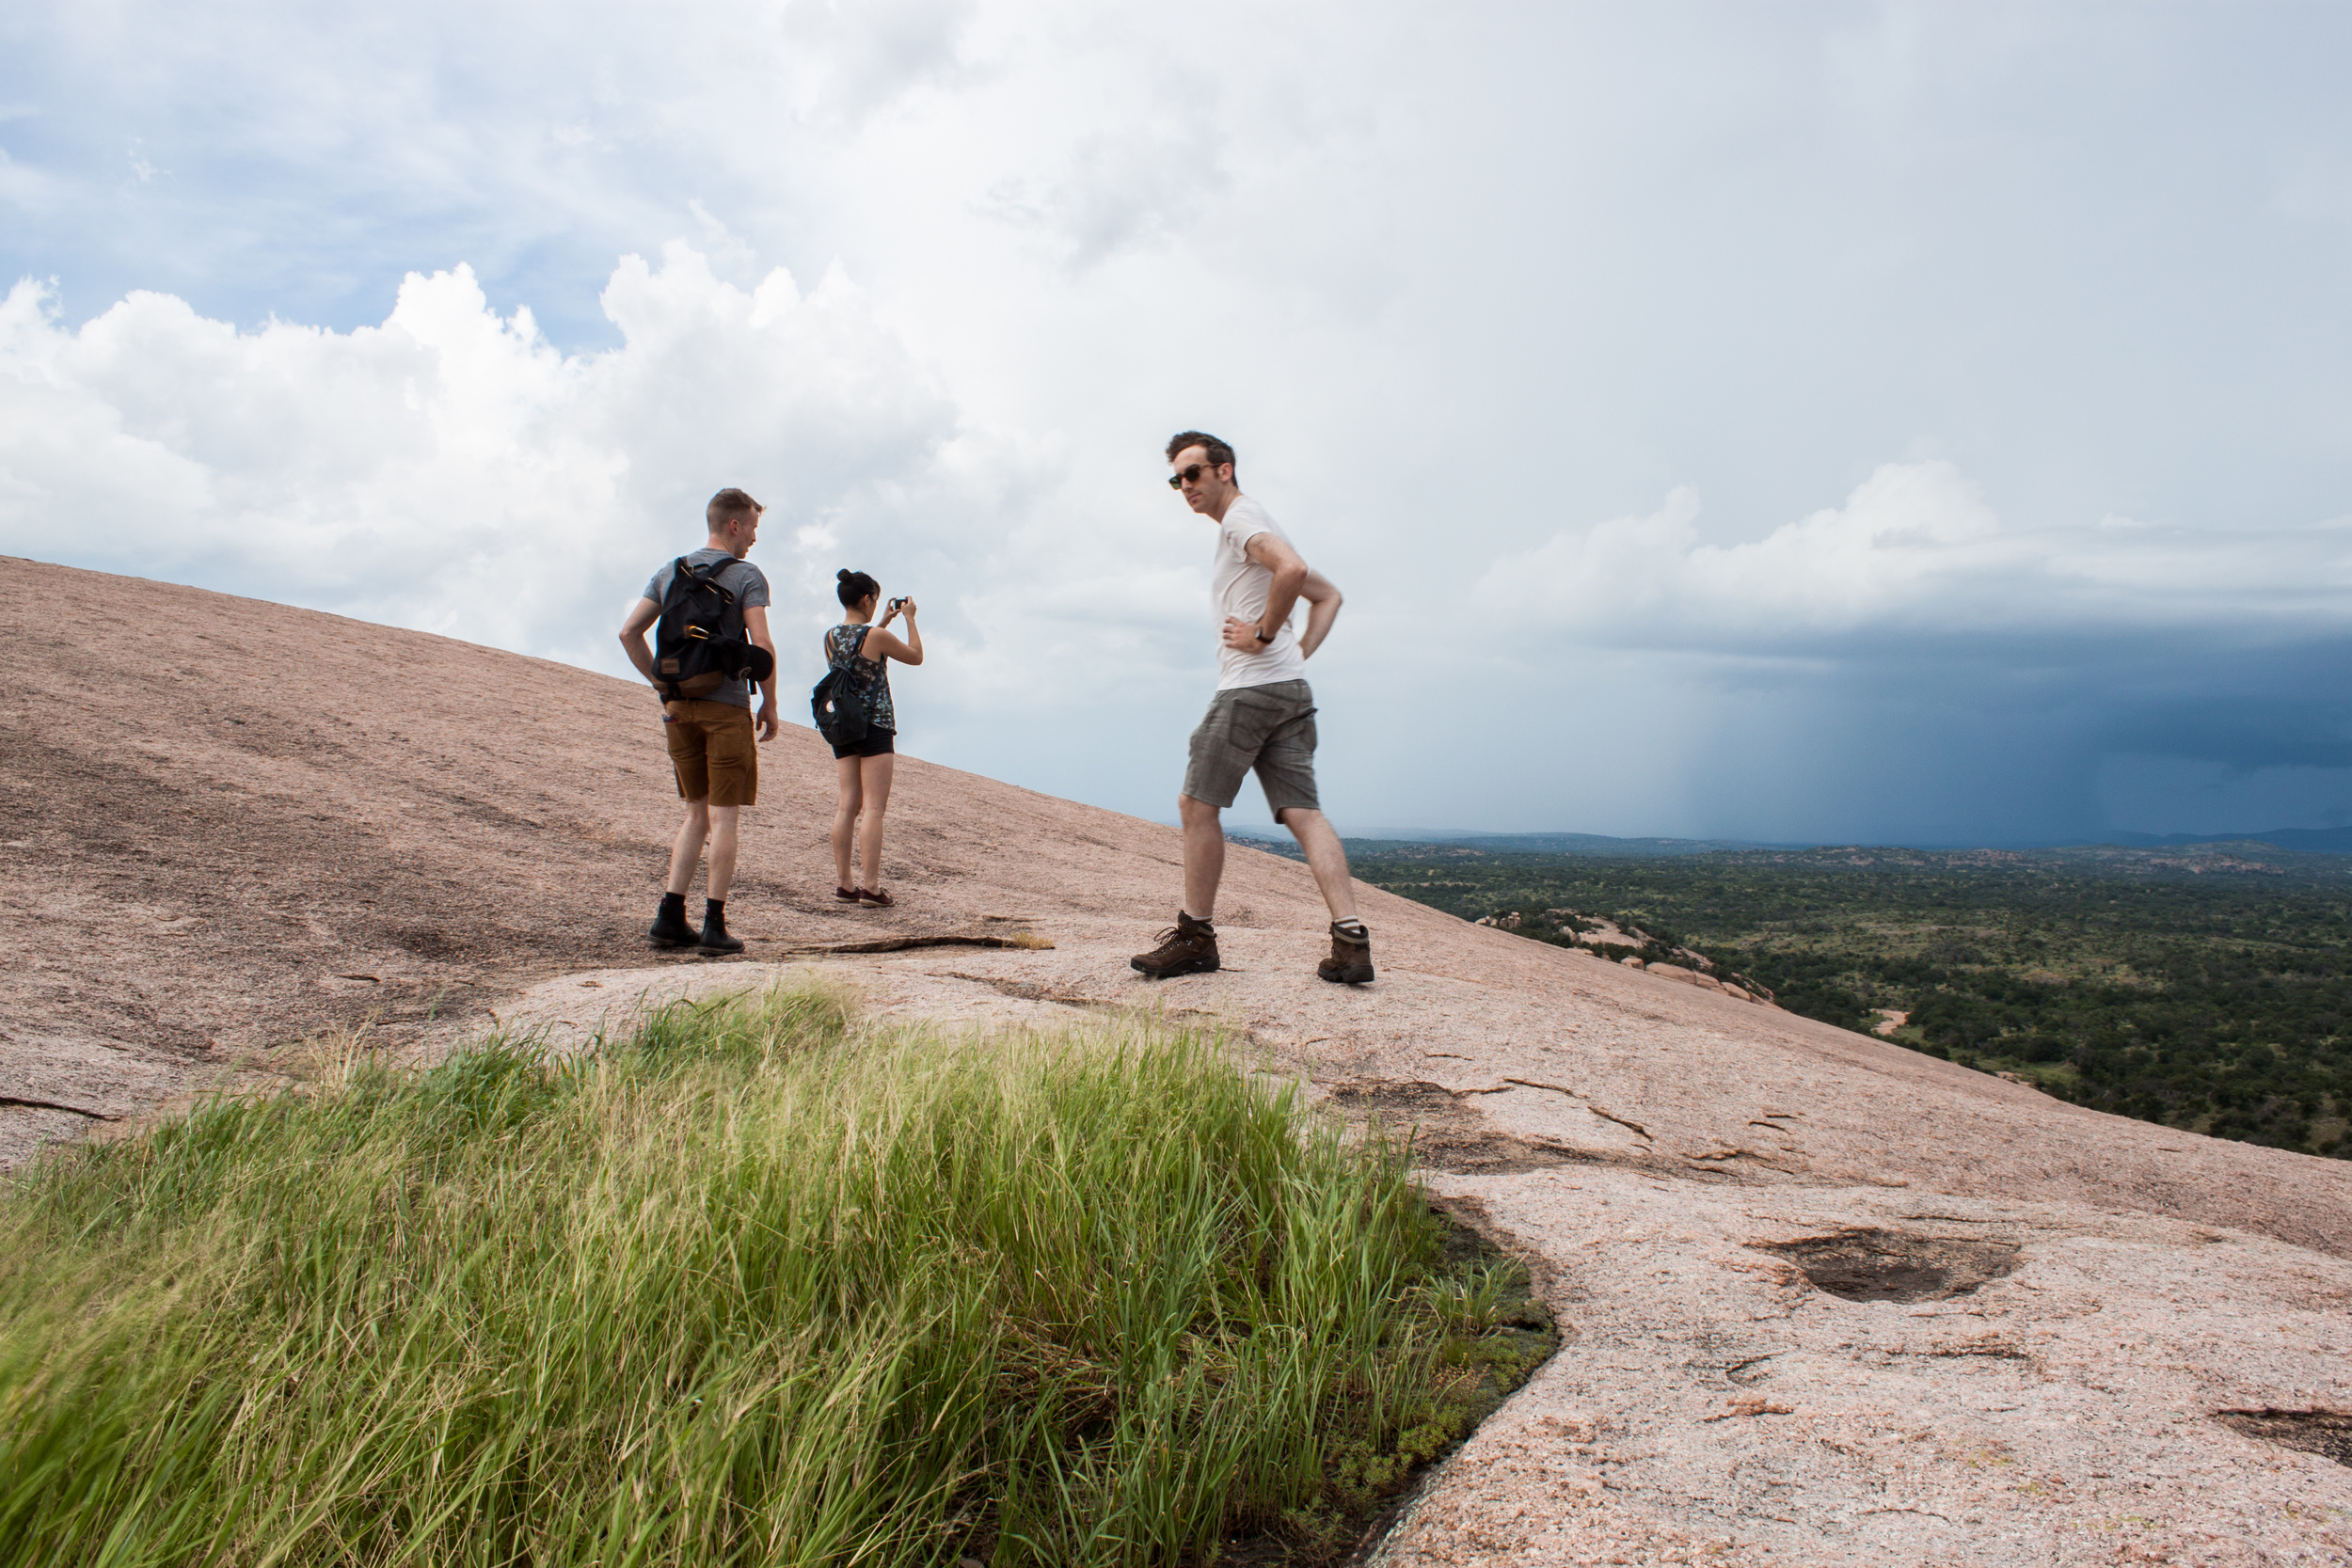 enchanted_rock-23.jpg